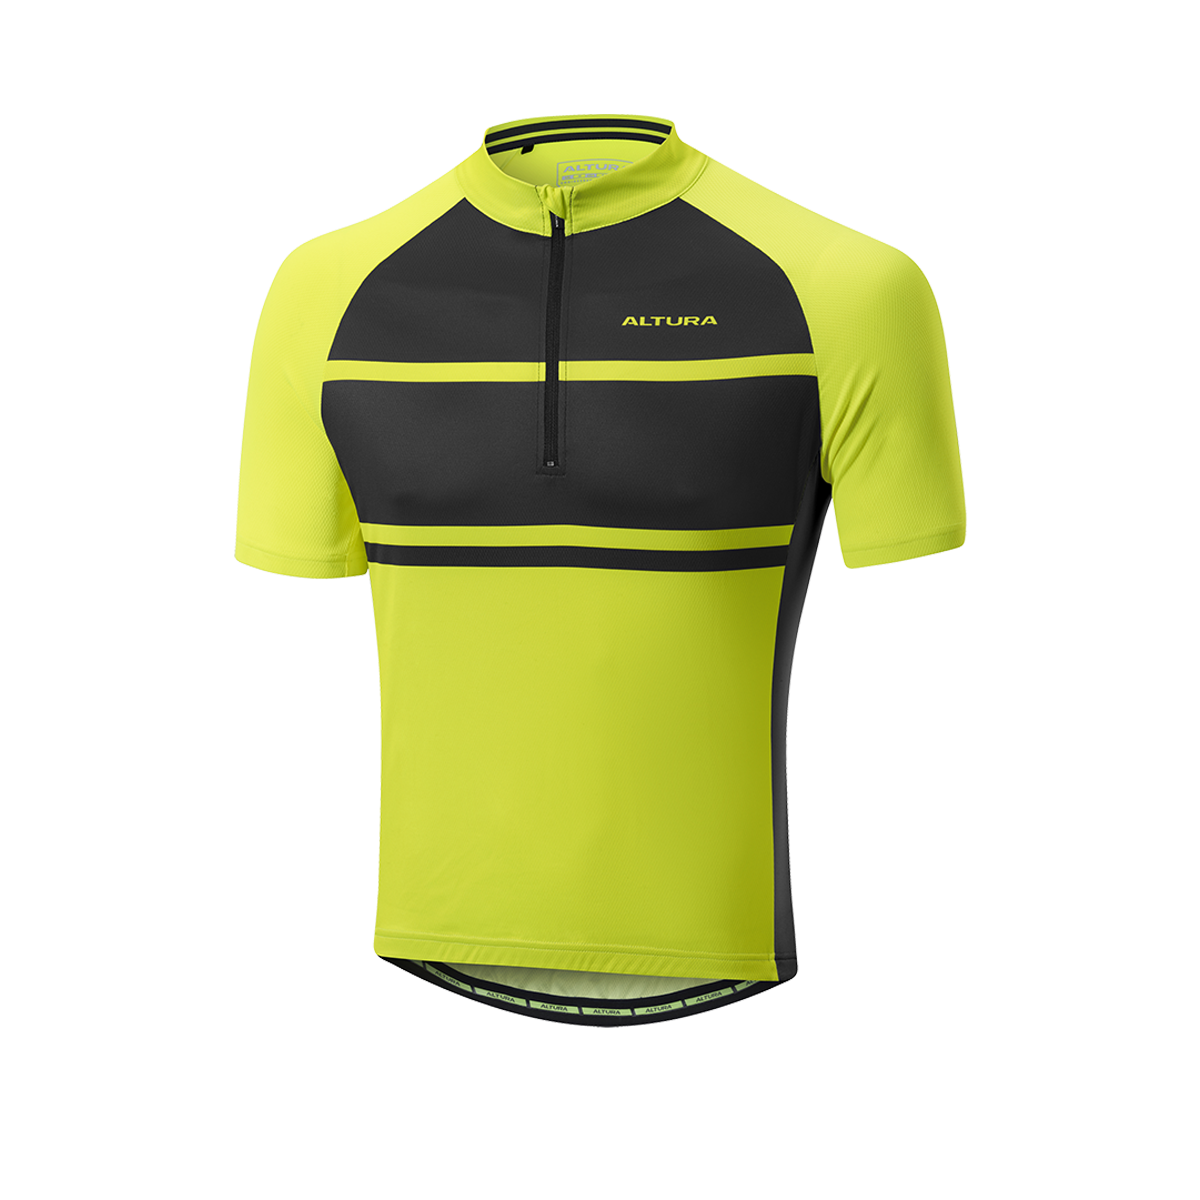 c3911e290 Altura Airstream 2 Short Sleeve Jersey in High-Vis Yellow £39.99